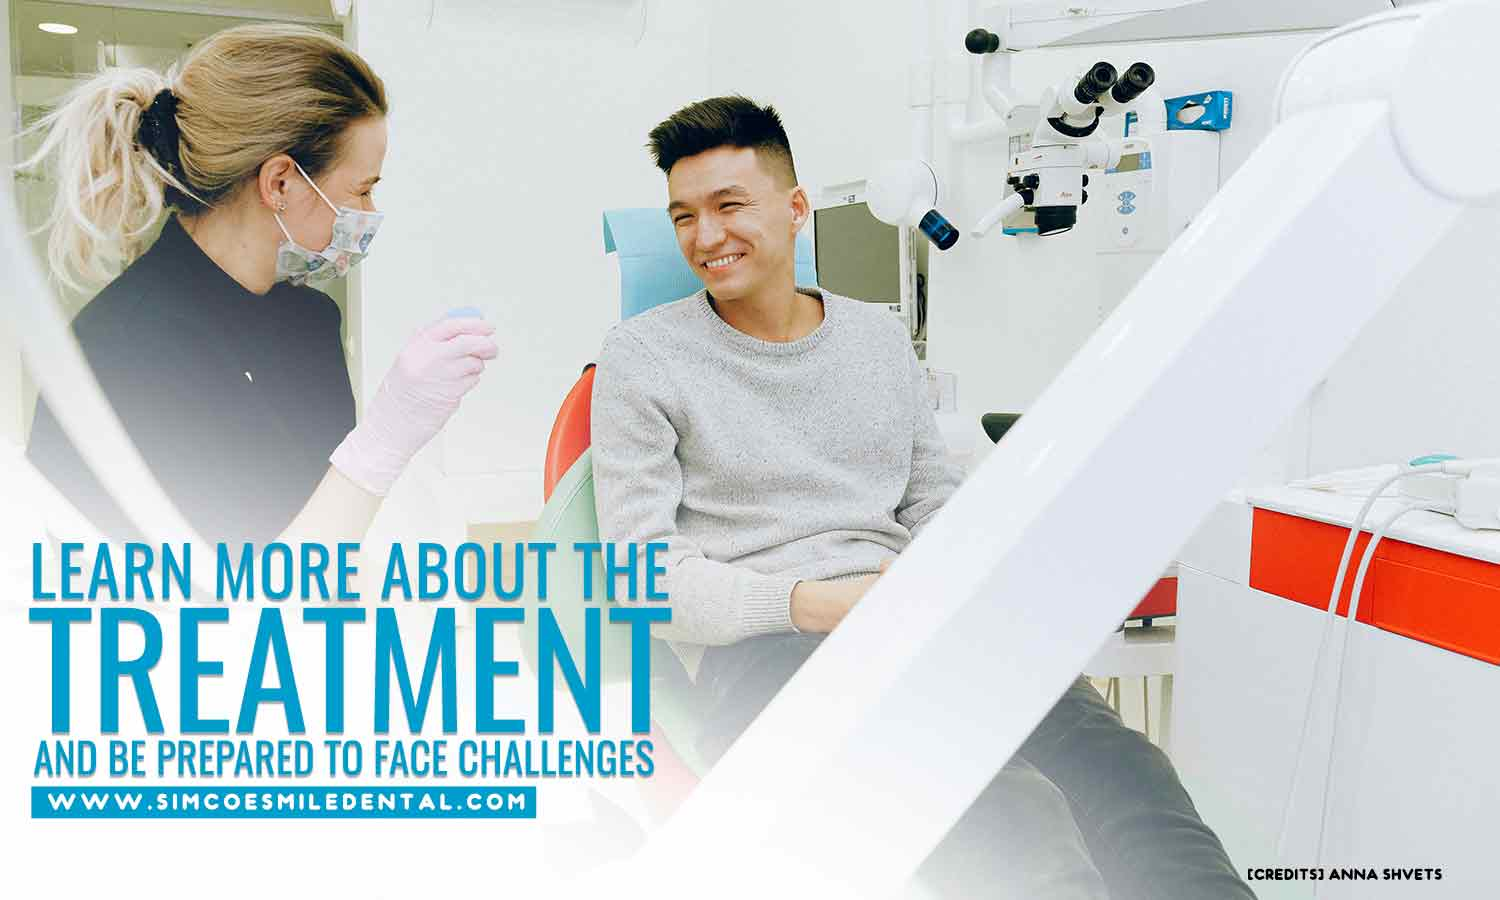 Learn-more-about-the-treatment-and-be-prepared-to-face-challenges What to Expect From Invisalign Treatment